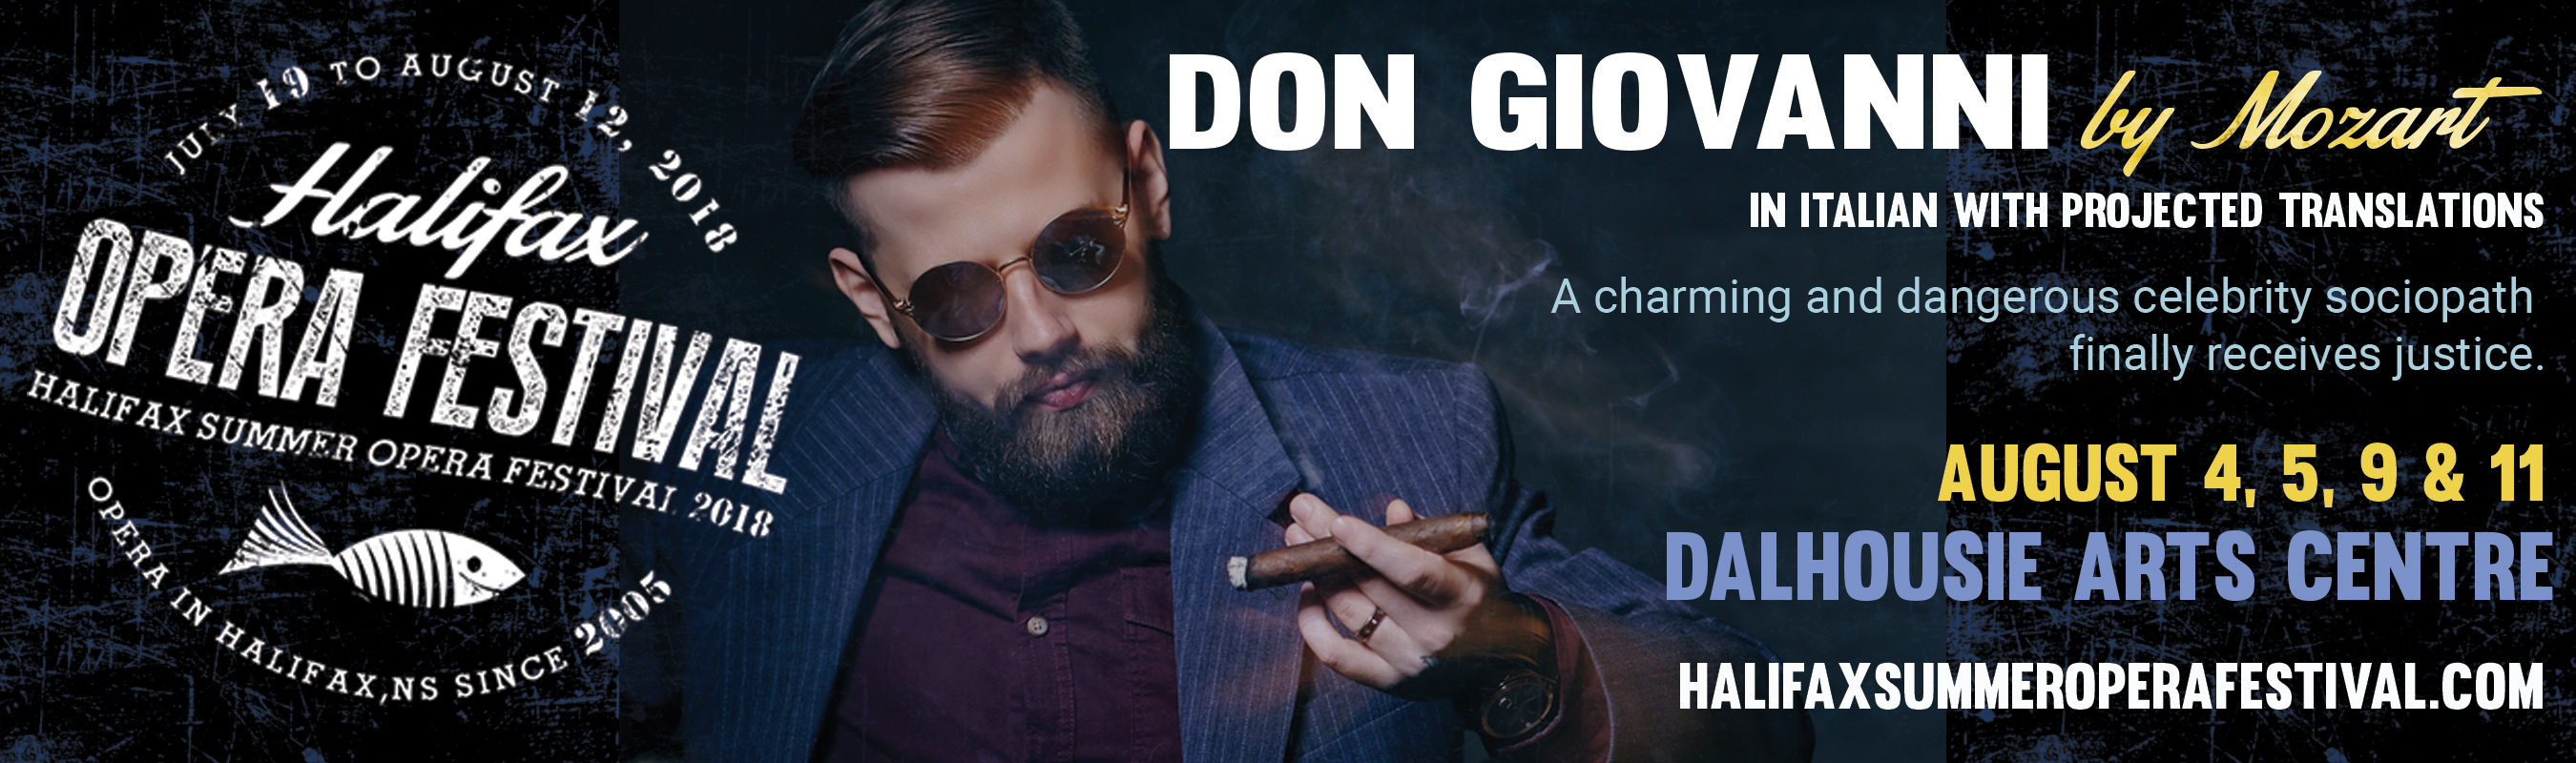 don giovanni banner